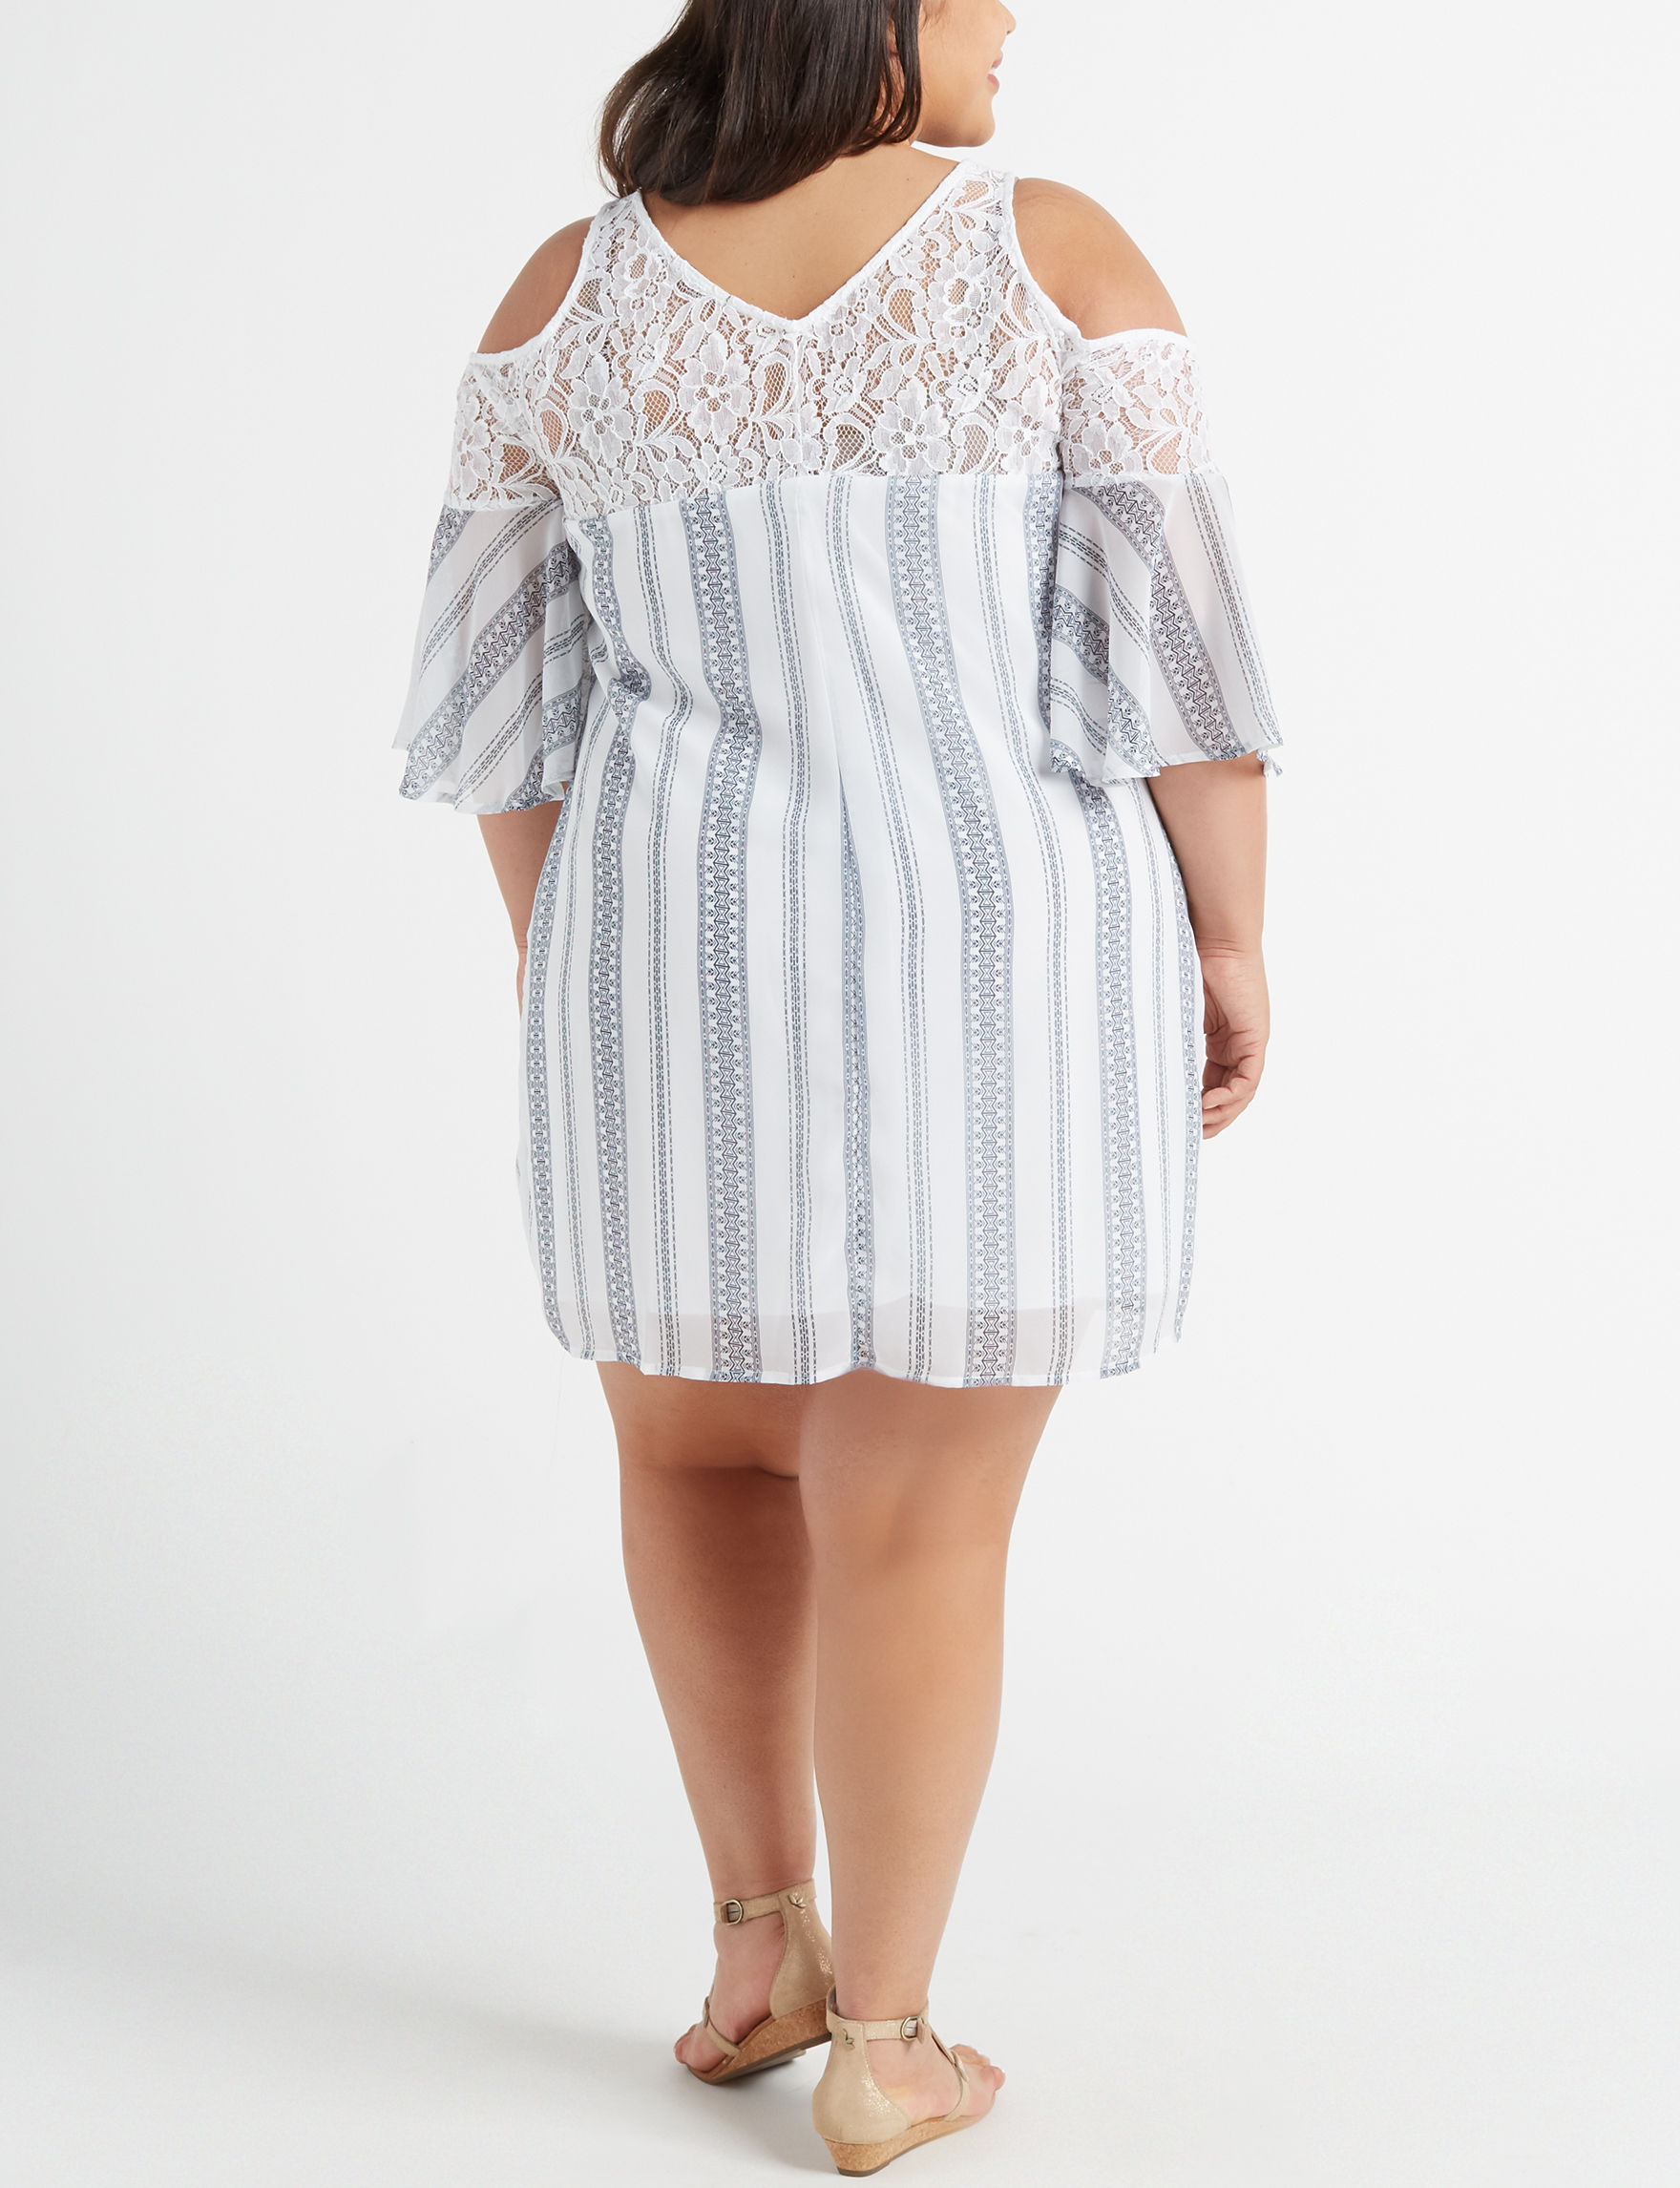 Plus Size Junior Casual Dresses | Saddha